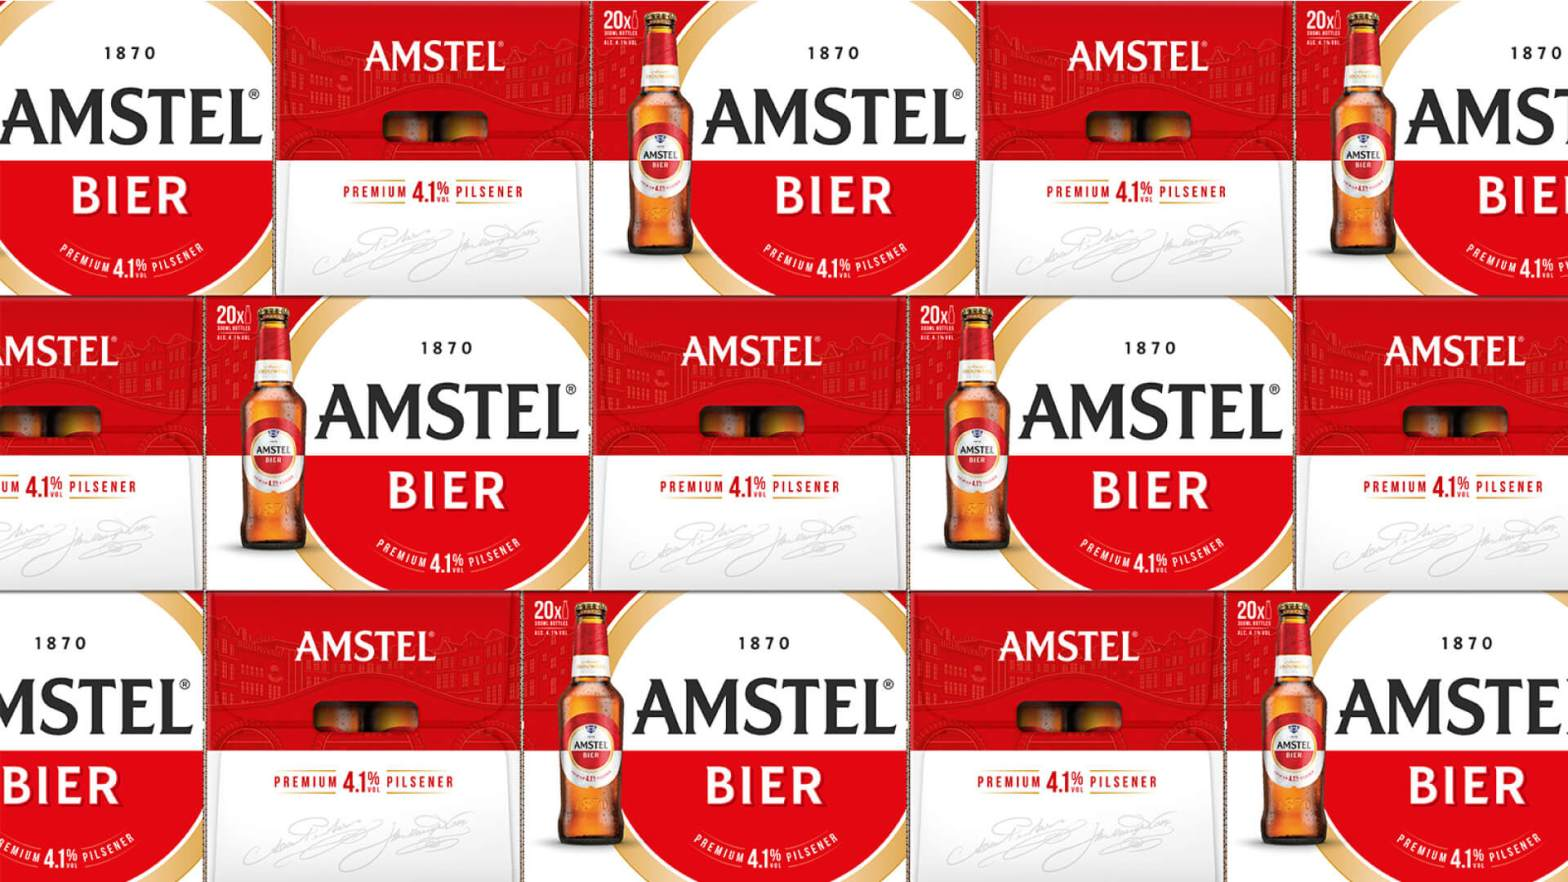 Thumbnail for Brand of the Day: Elmwood Tightens Up Amstel's Identity